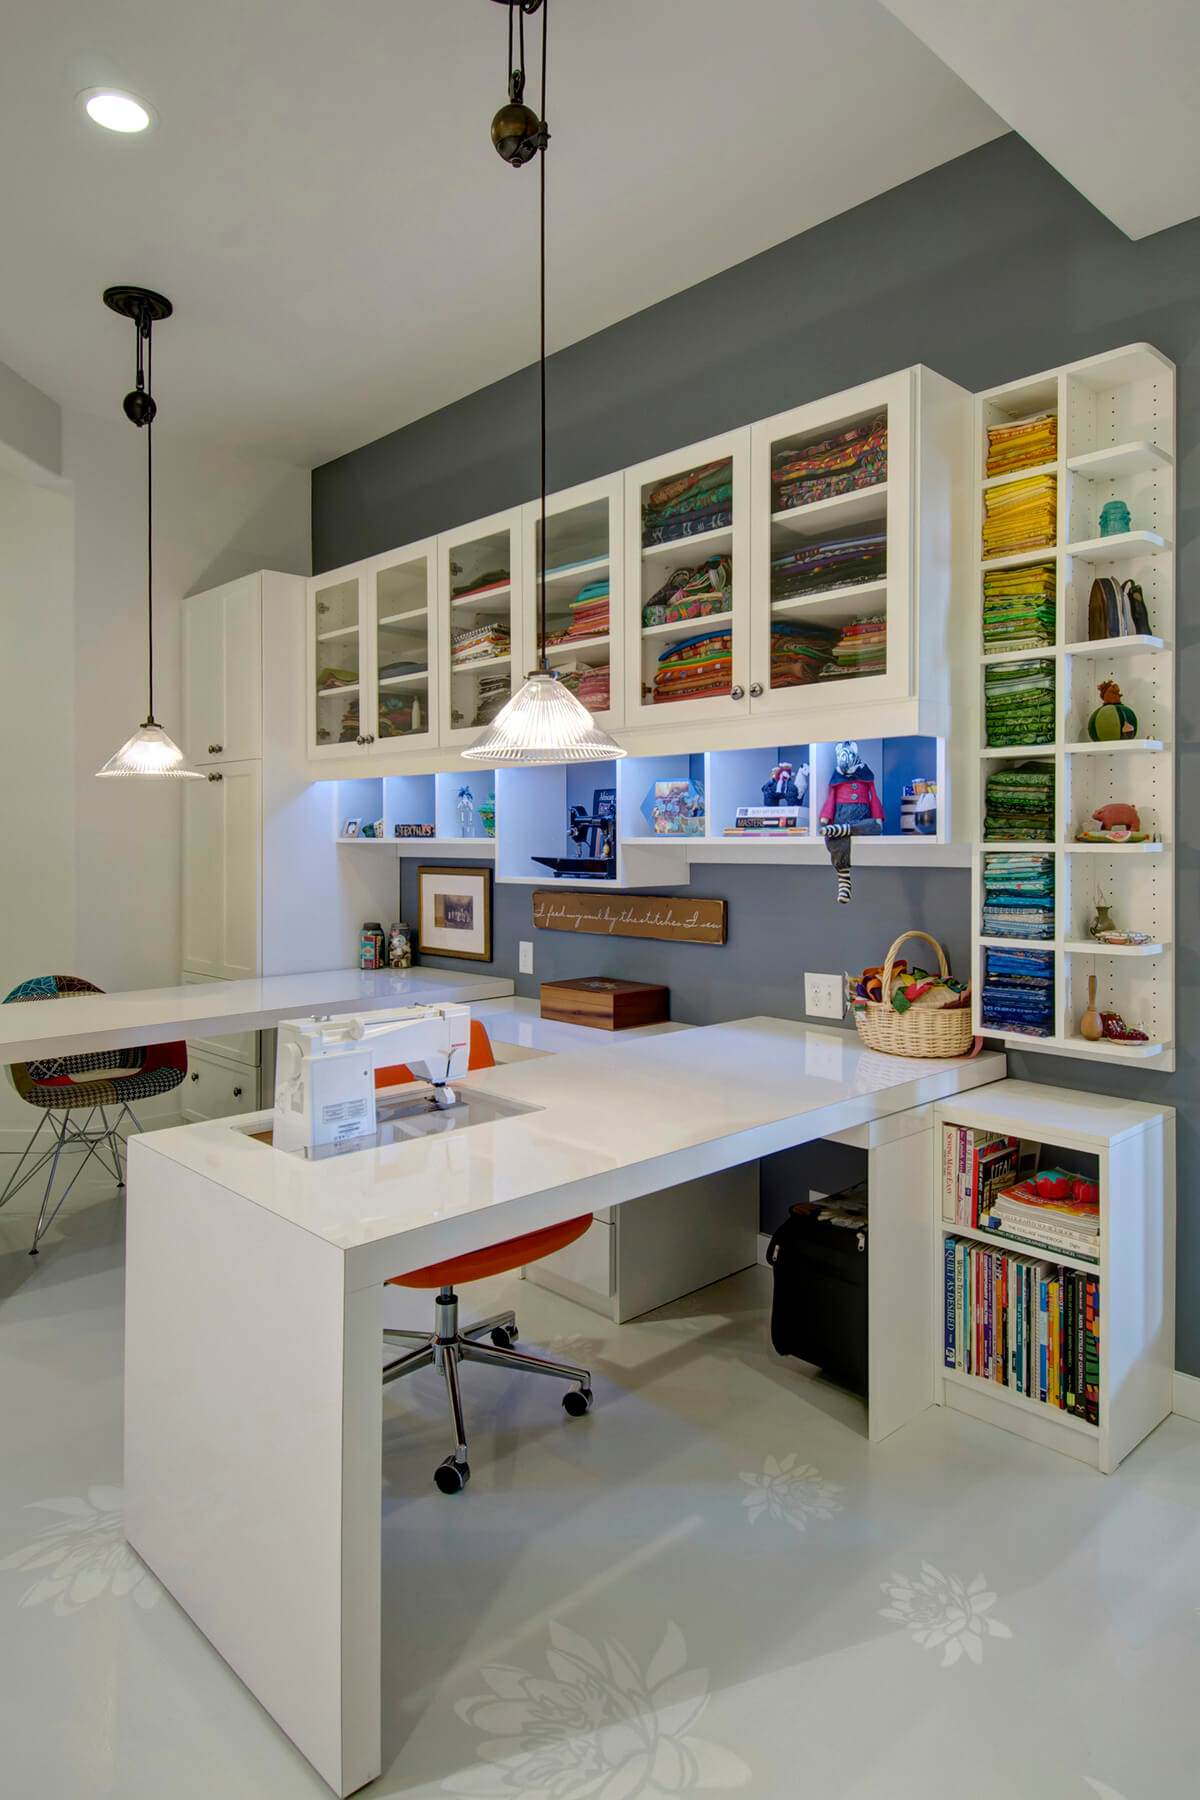 23 craft room design ideas creative rooms Sewing room designs